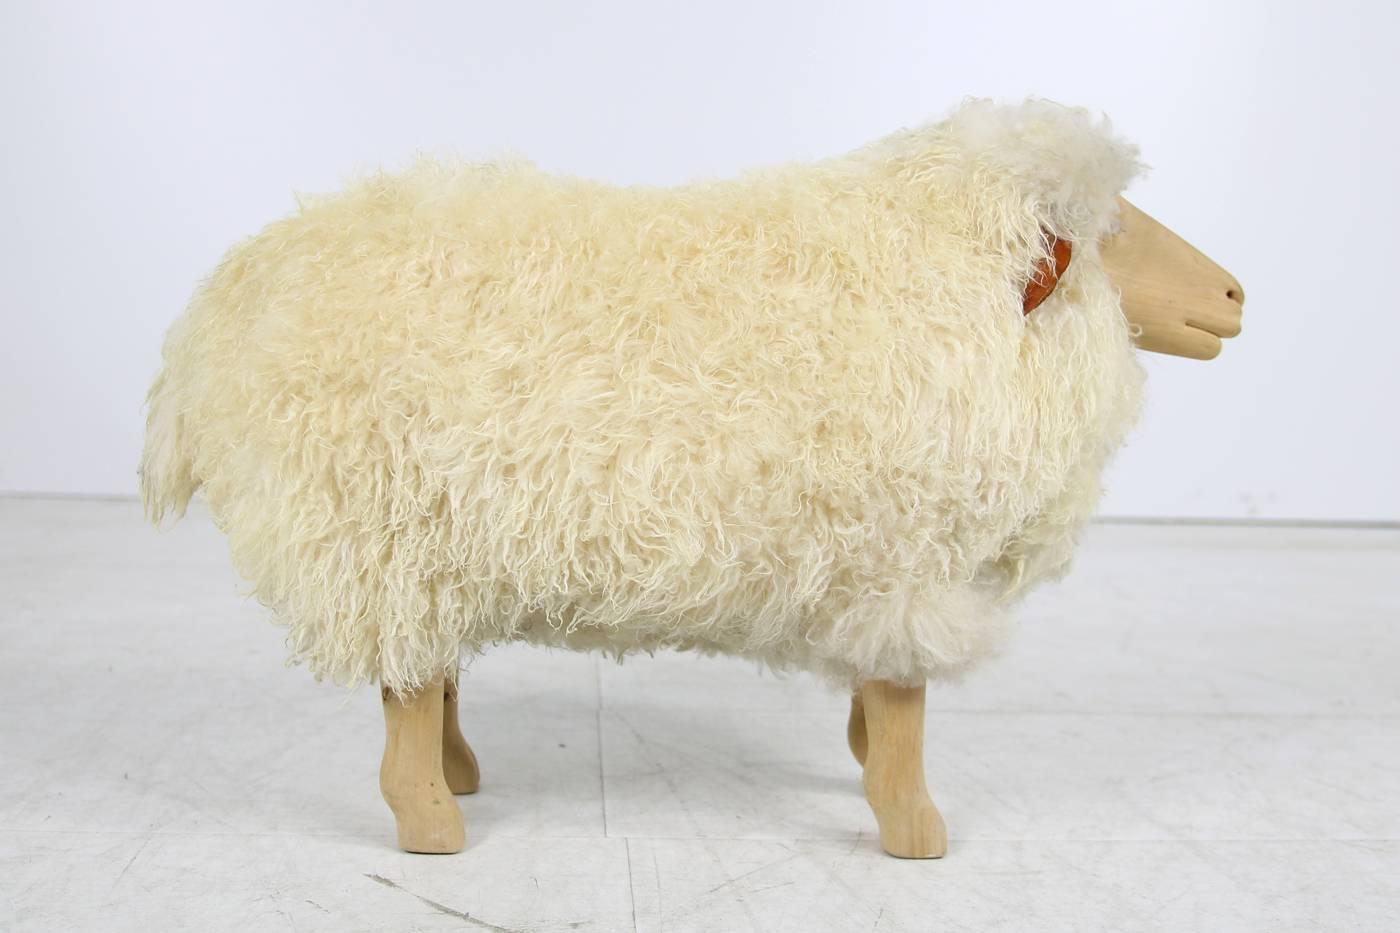 Vintage 1960s Sheep Oak And Leather In Francois Xavier Lalanne Style,  Sheepskin For Sale At 1stdibs